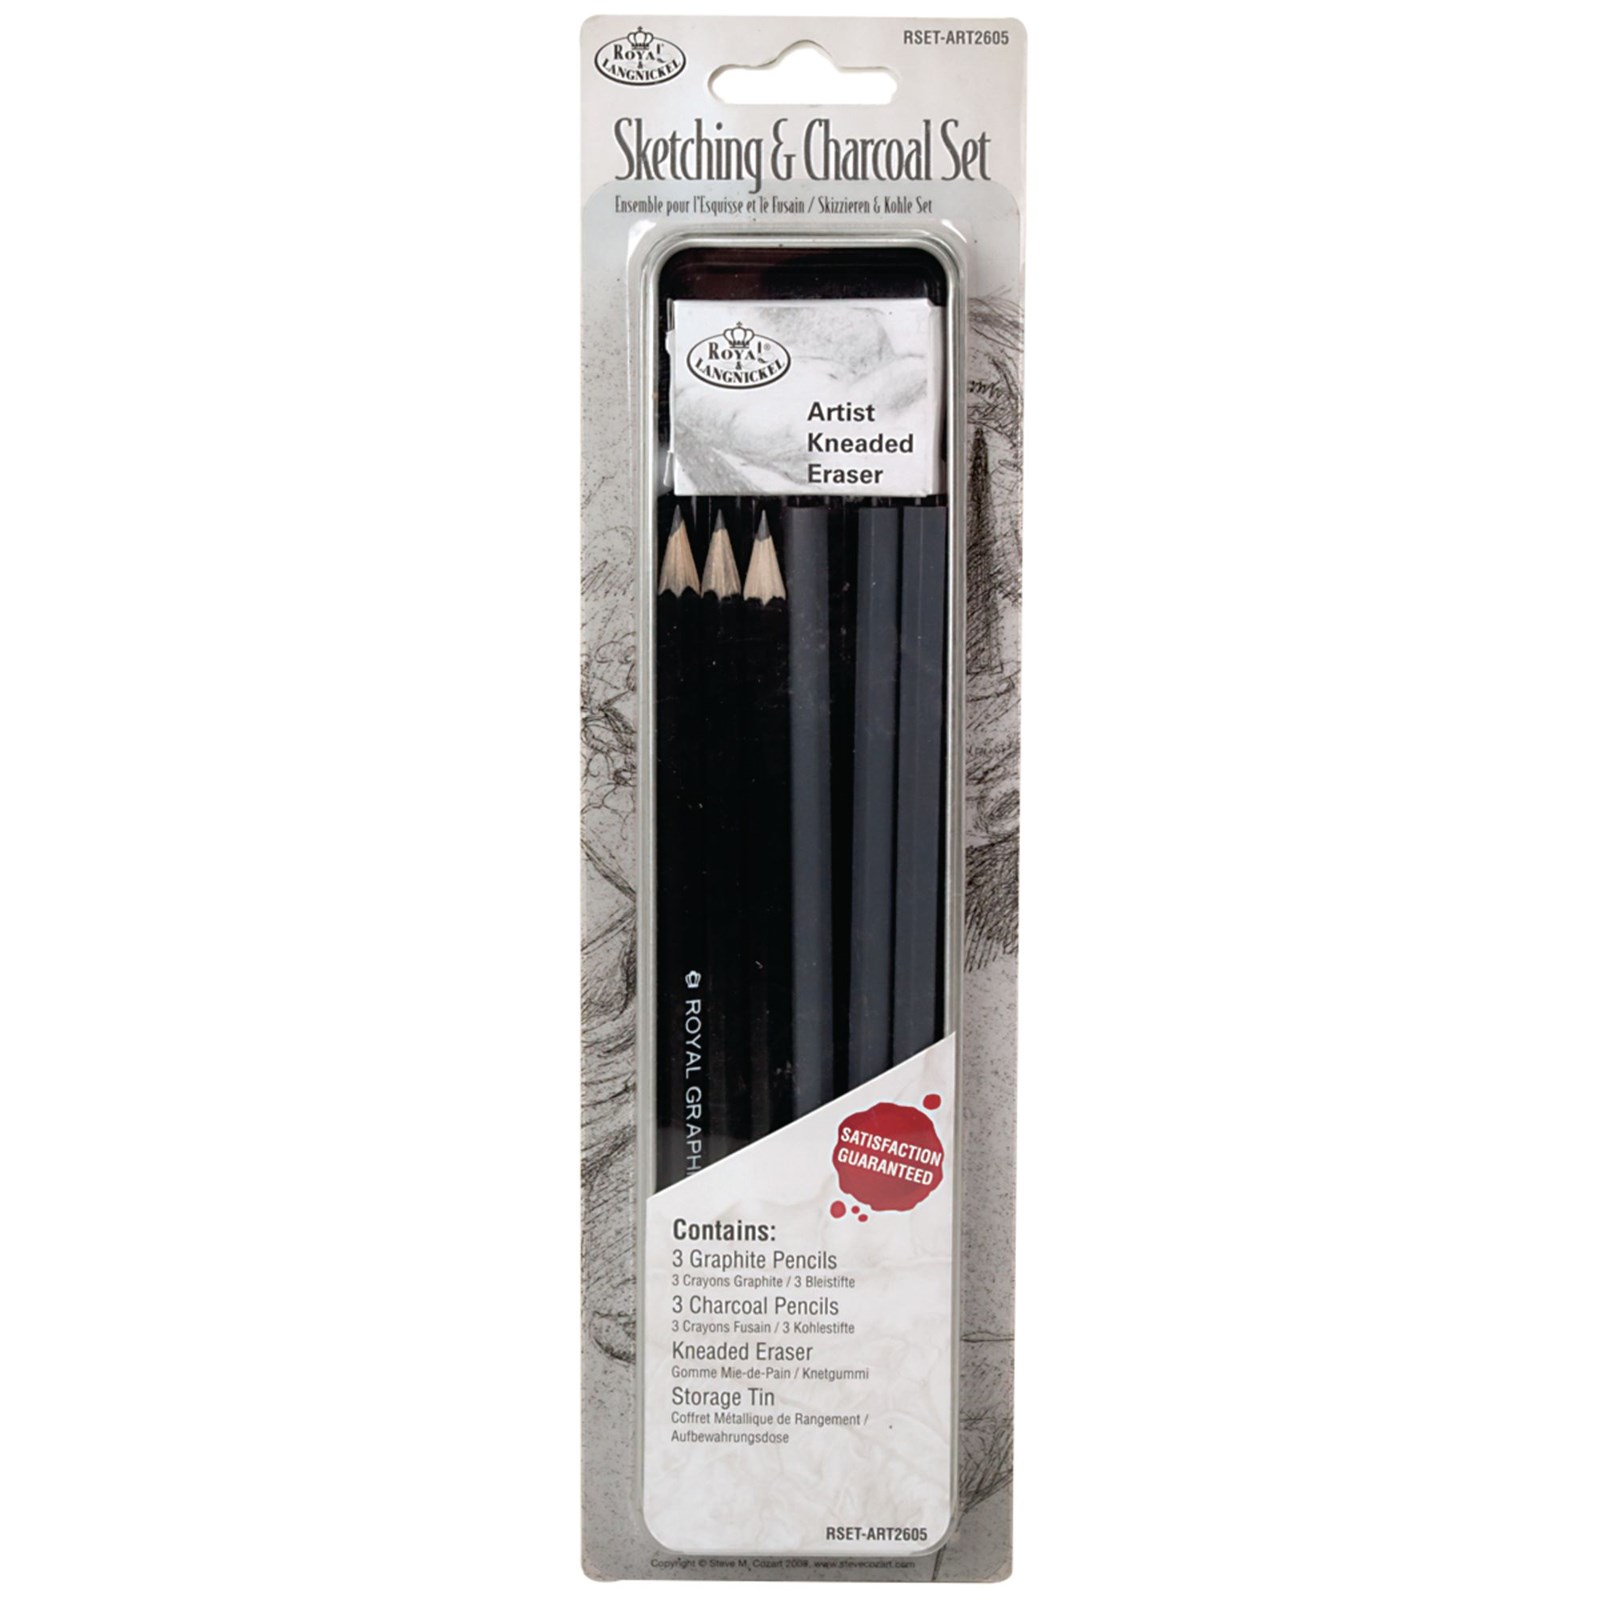 Sketching and Charcoal Set